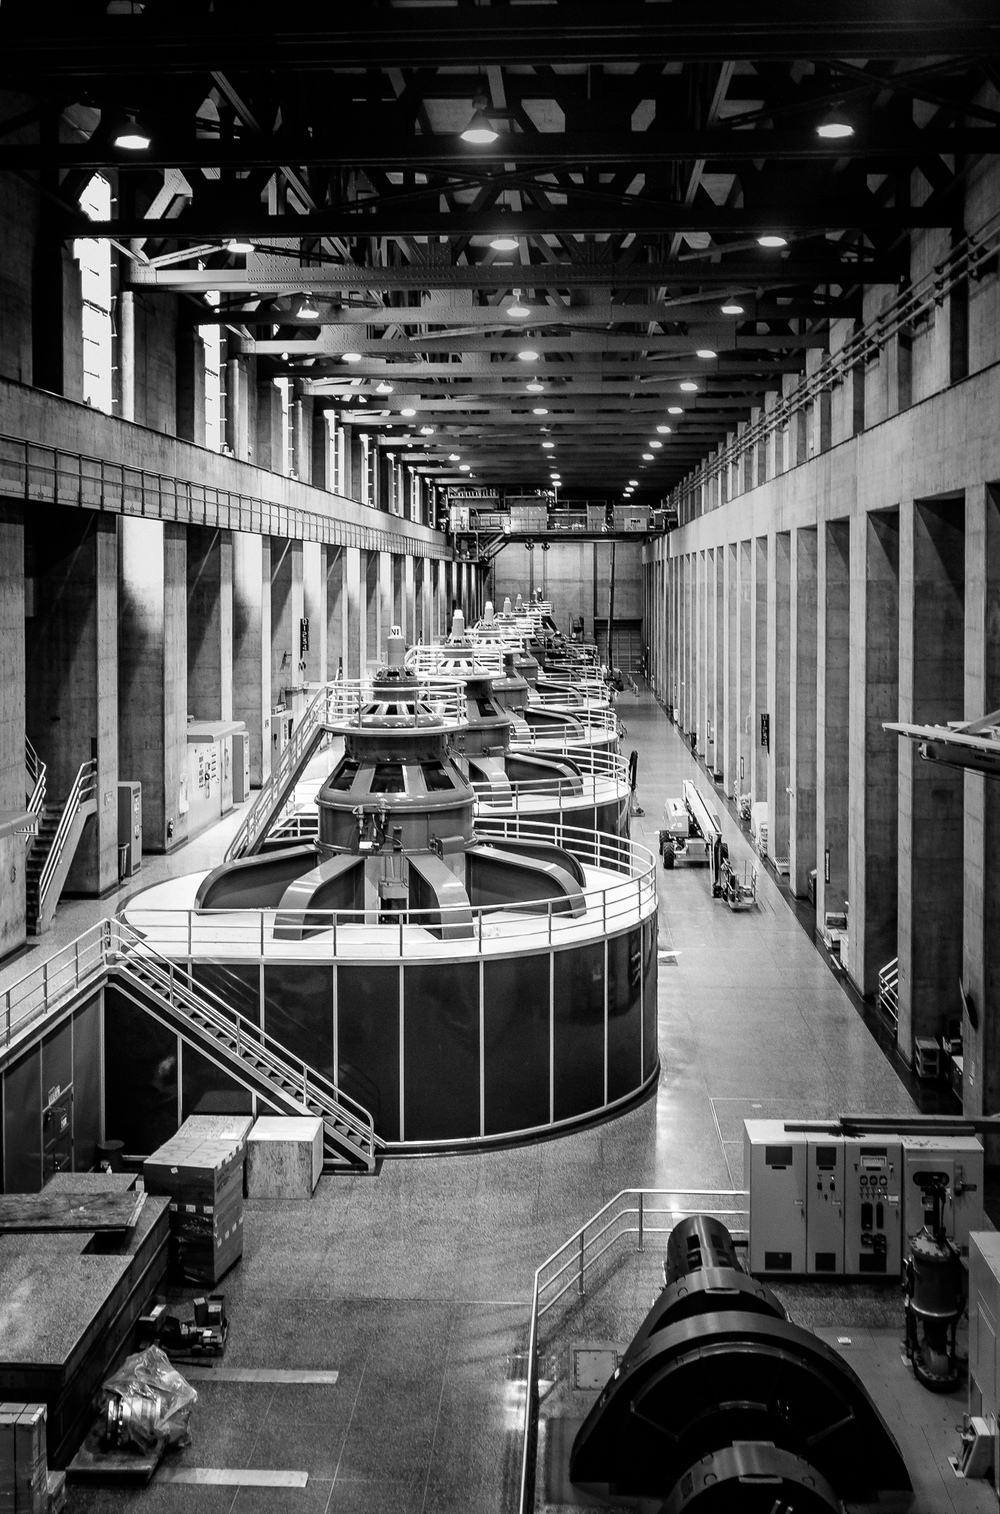 Alternating Current -   One of the Hoover Dam generator halls. [ Fujifilm X100t, f/2, 1/60s, ISO 800 ]